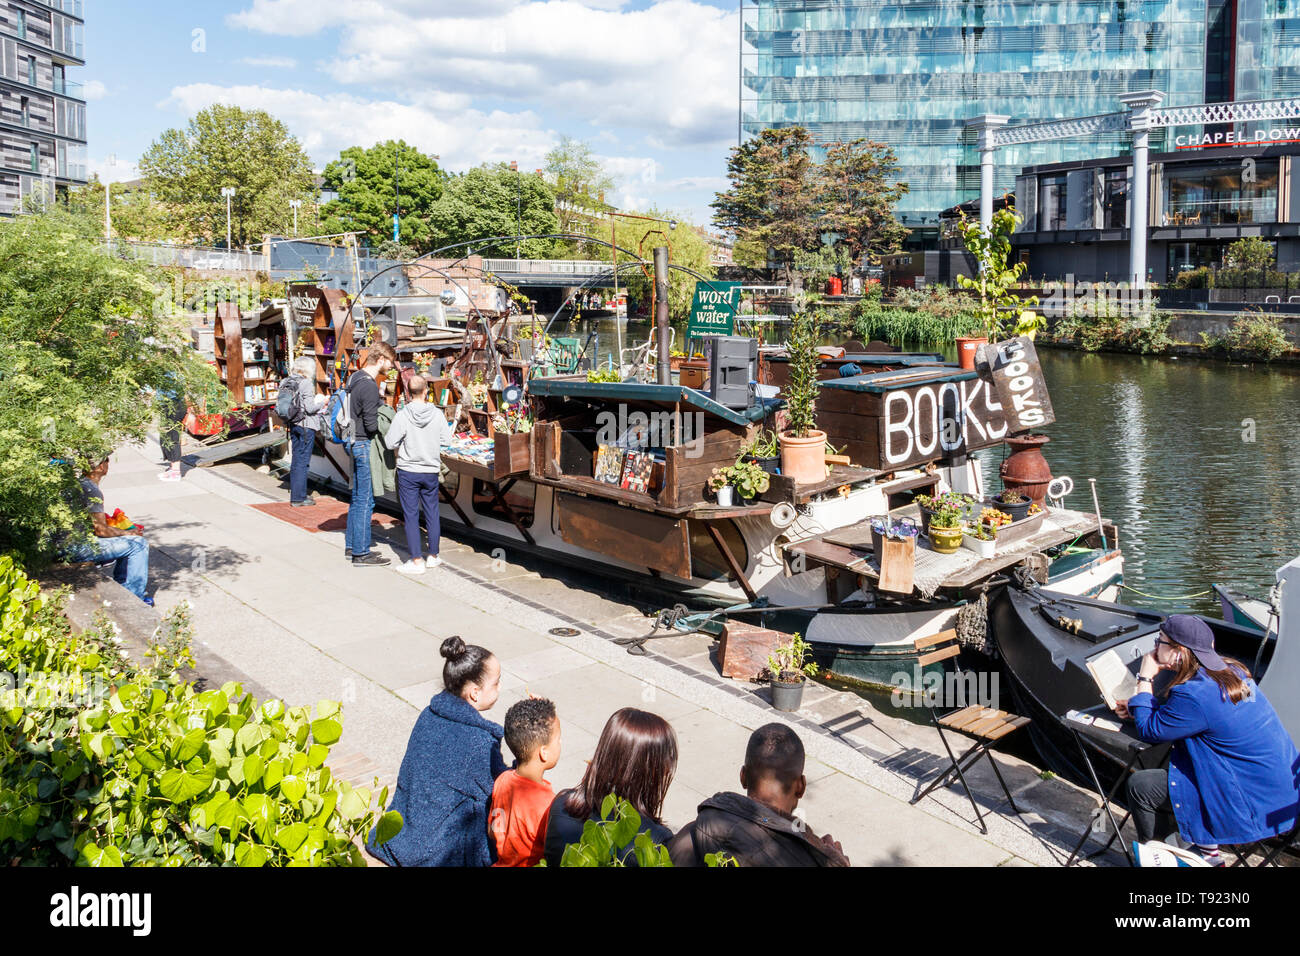 'Word on the Water', the London Bookbarge on Regent's Canal at King's Cross, London, UK, 2019 - Stock Image